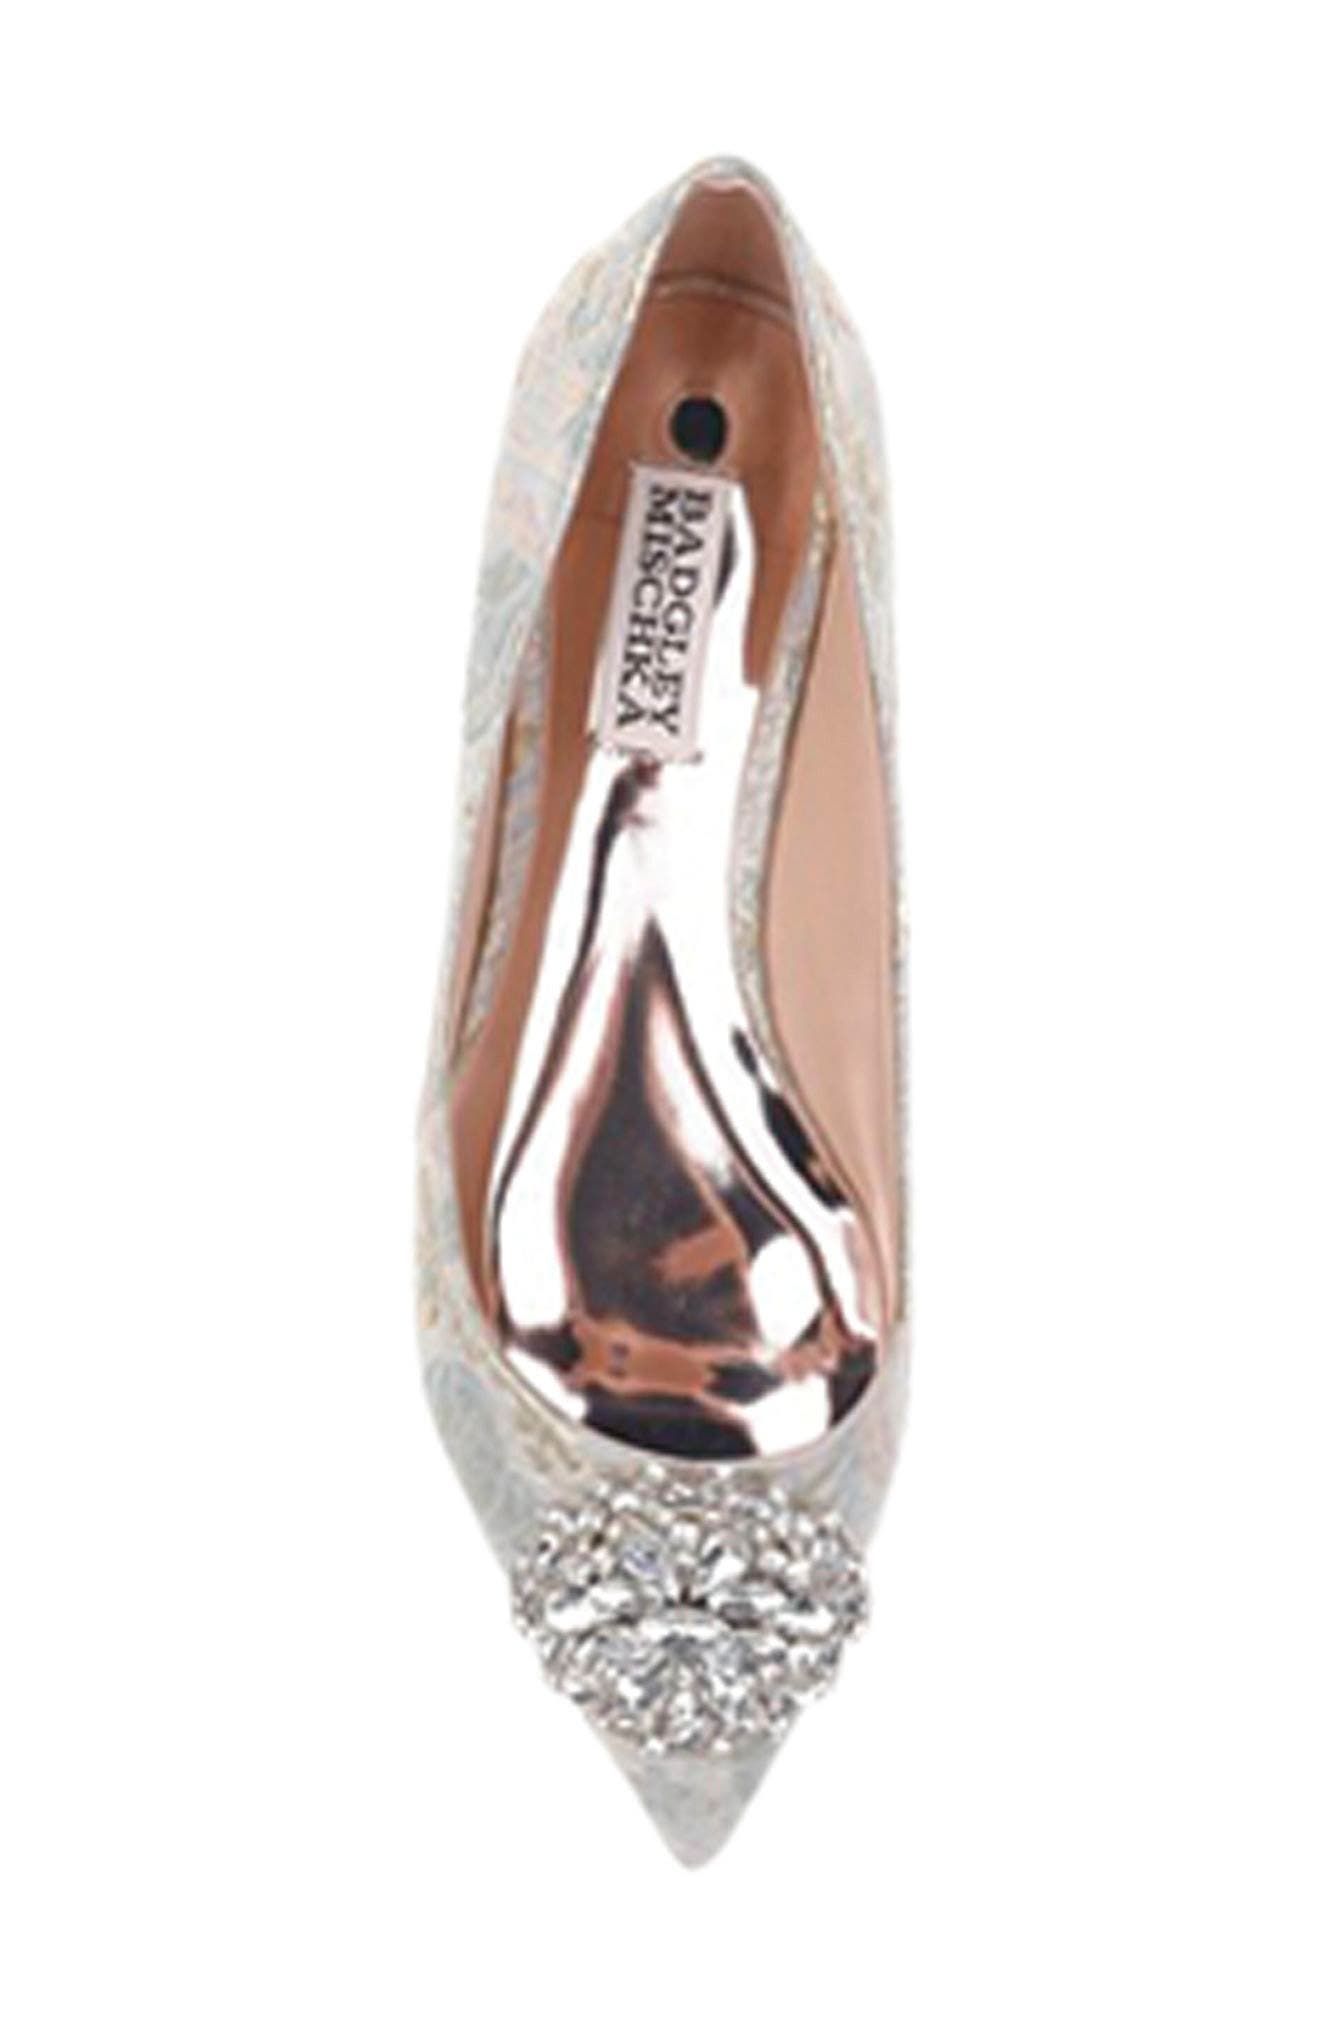 Badgley Mischka 'Davis' Crystal Embellished Pointy Toe Flat,                             Alternate thumbnail 7, color,                             316